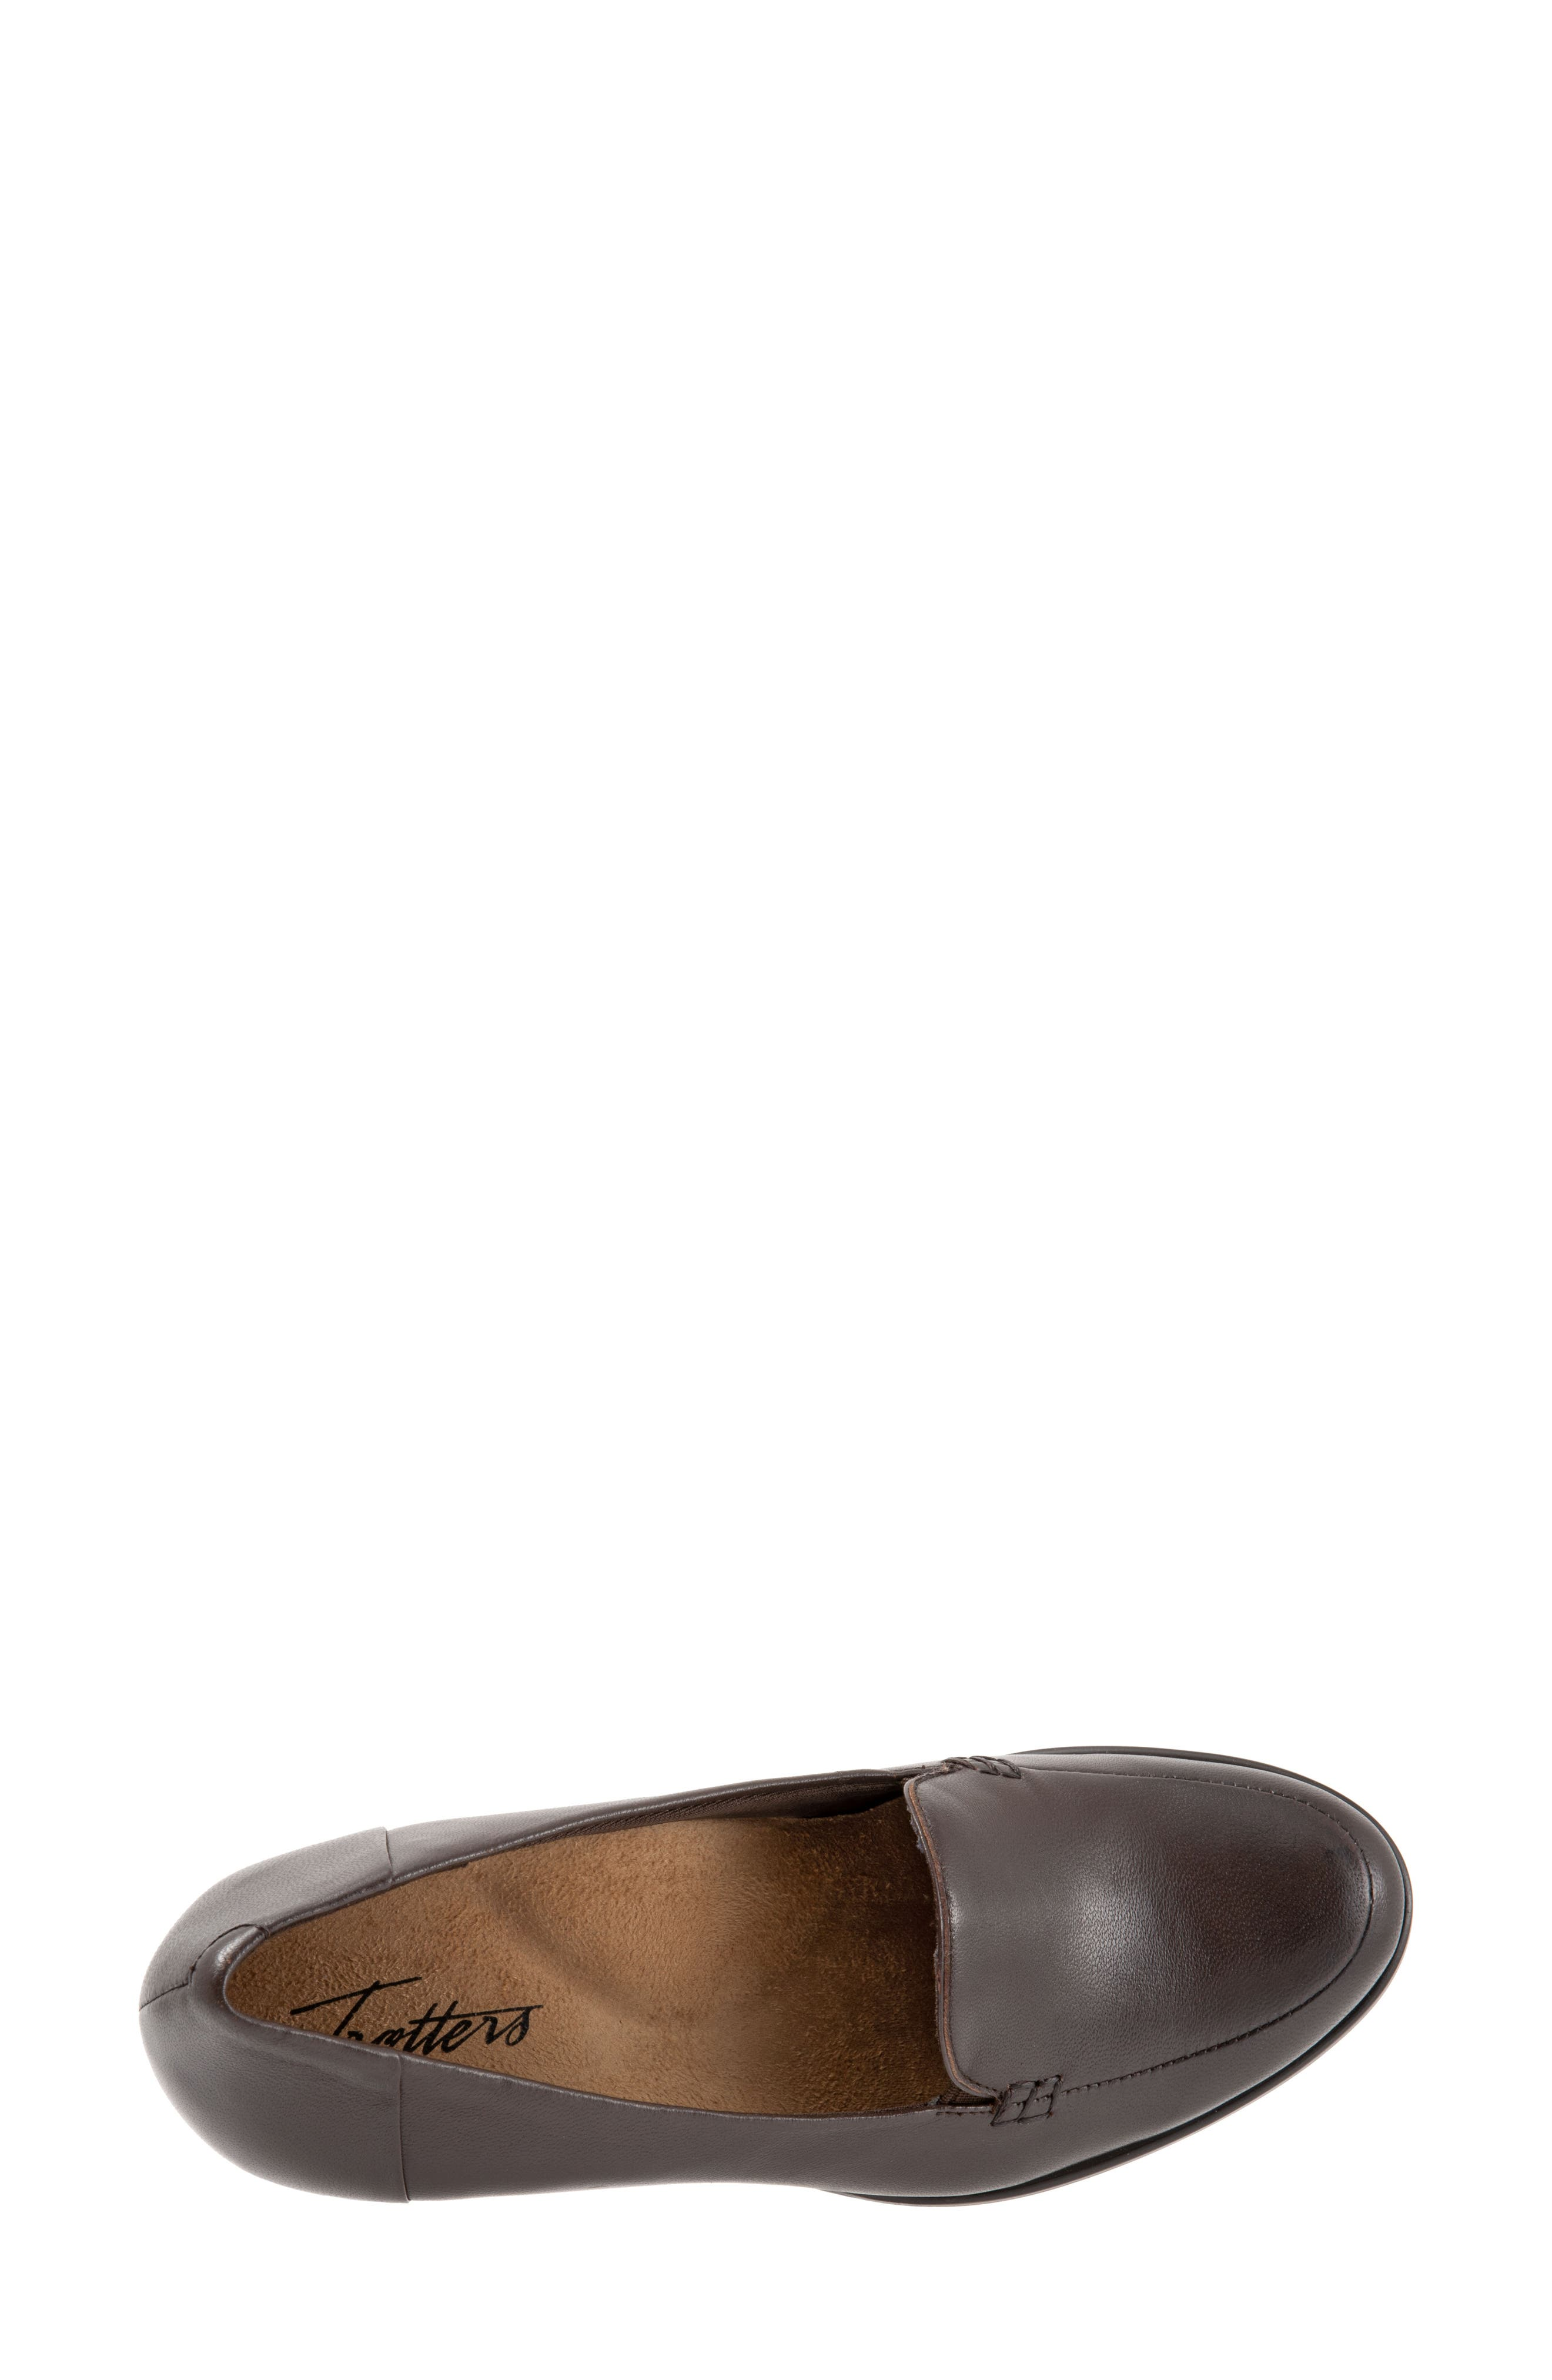 Quincy Loafer Pump,                             Alternate thumbnail 5, color,                             DARK BROWN LEATHER